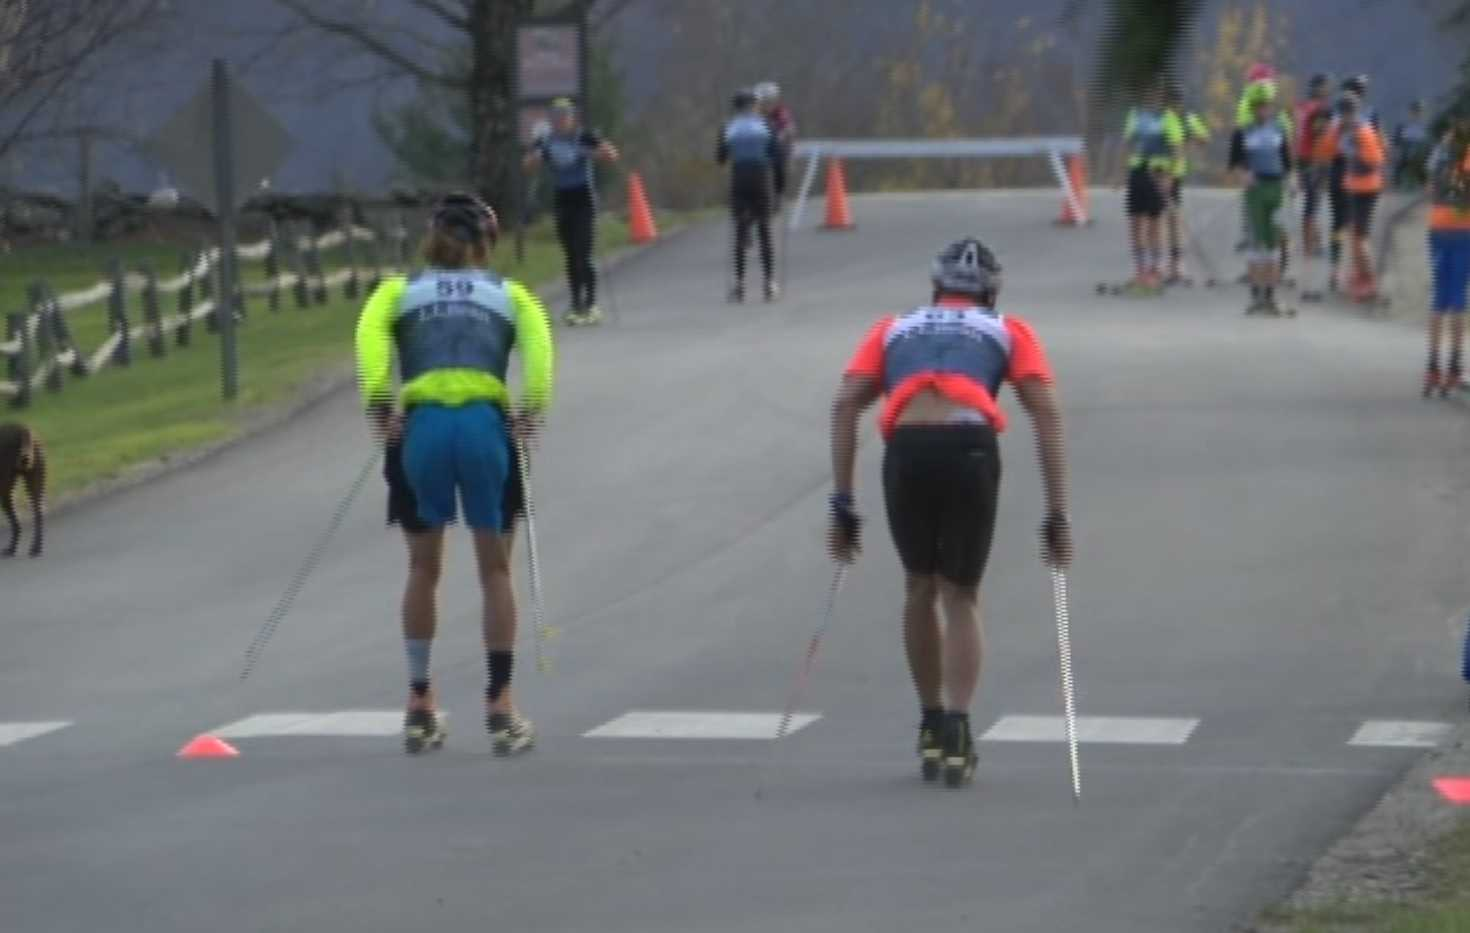 Young cross-country skiers, Olympians go head-to-head in roller ski competition